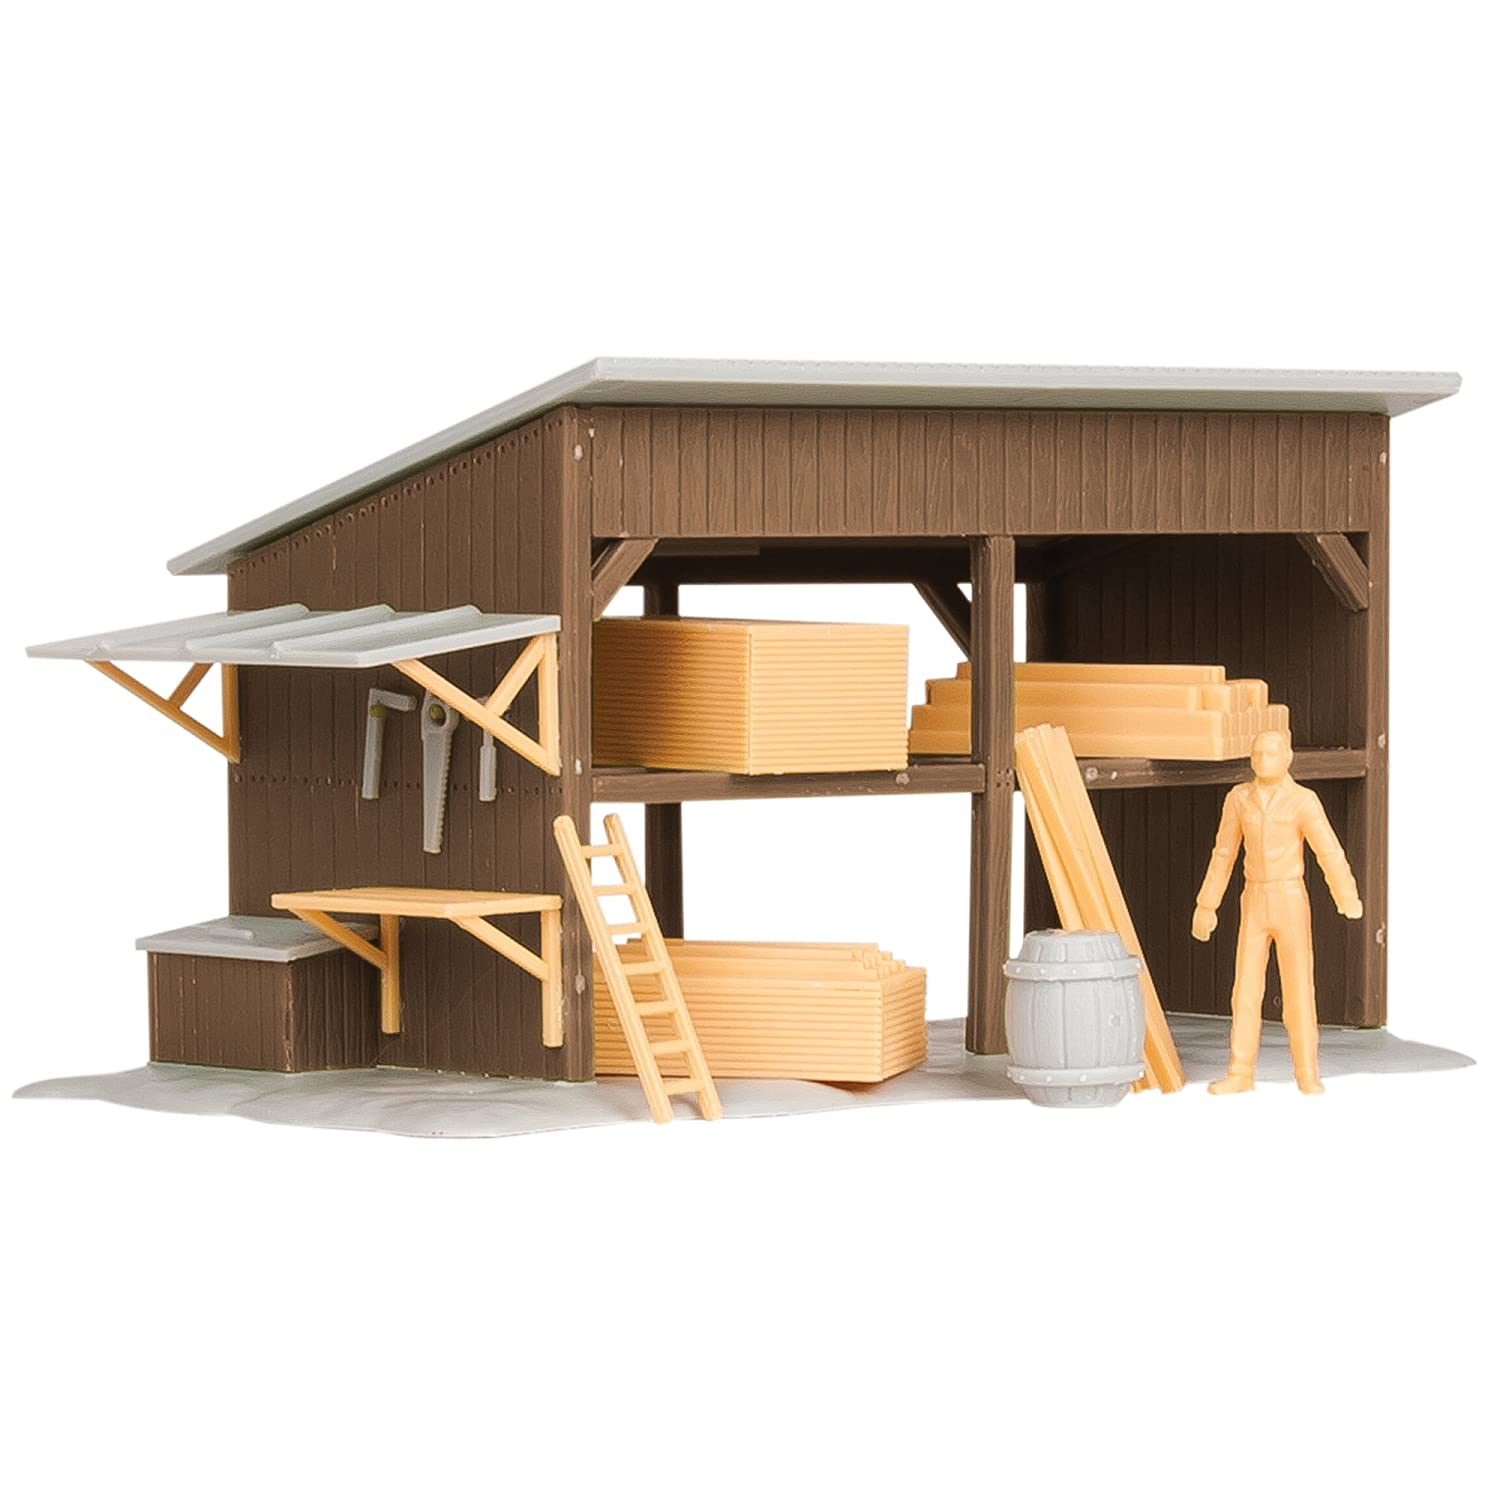 Lionel Electric O Gauge Model Train Accessories, Lumber Shed Kit